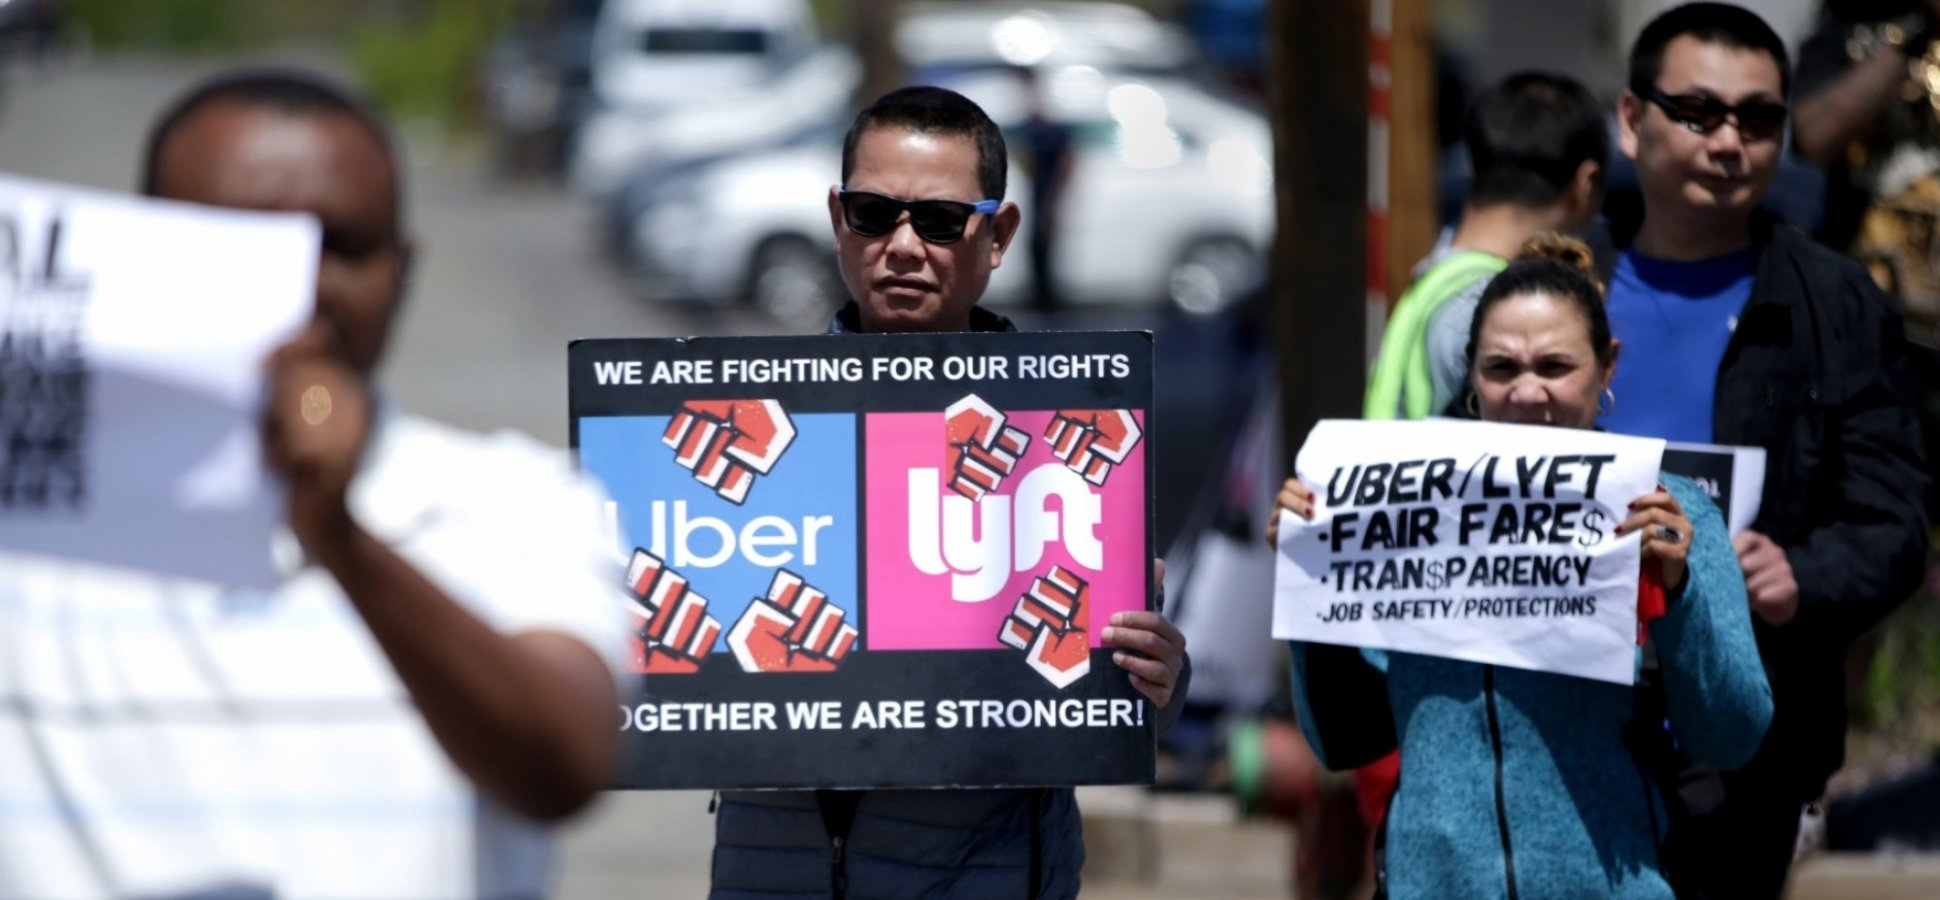 The Big Mistake by Uber and Lyft That Led to California's New Employment Law